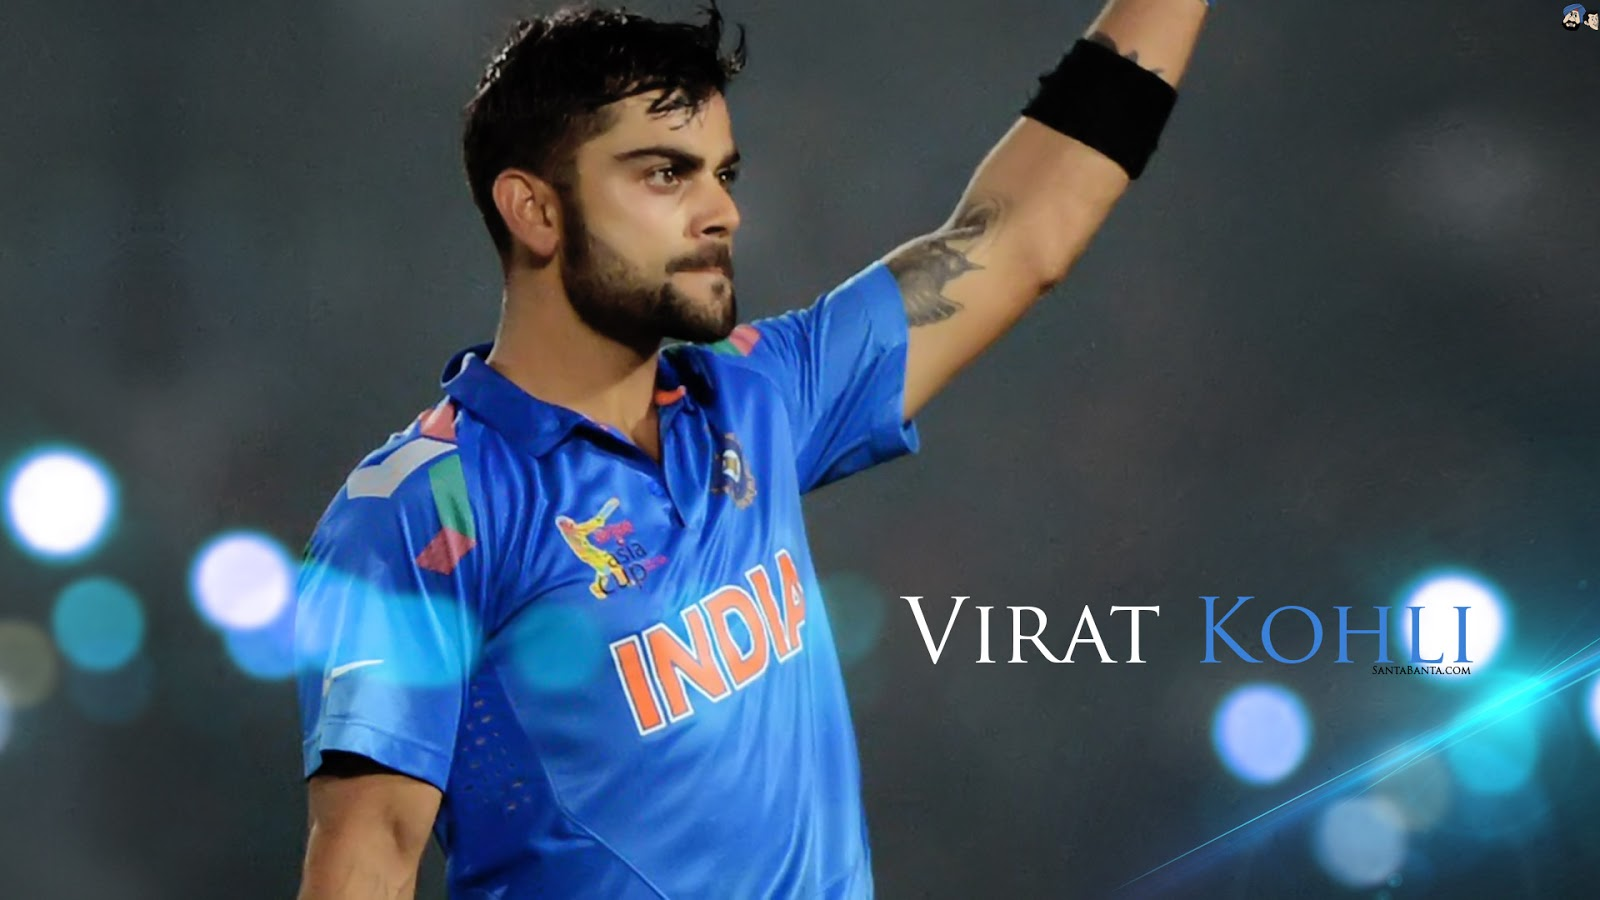 Indian Cricketers HD Wallpaper   Desktop Wallpapers   Latest Bollywood Celebrities Cricketer ...